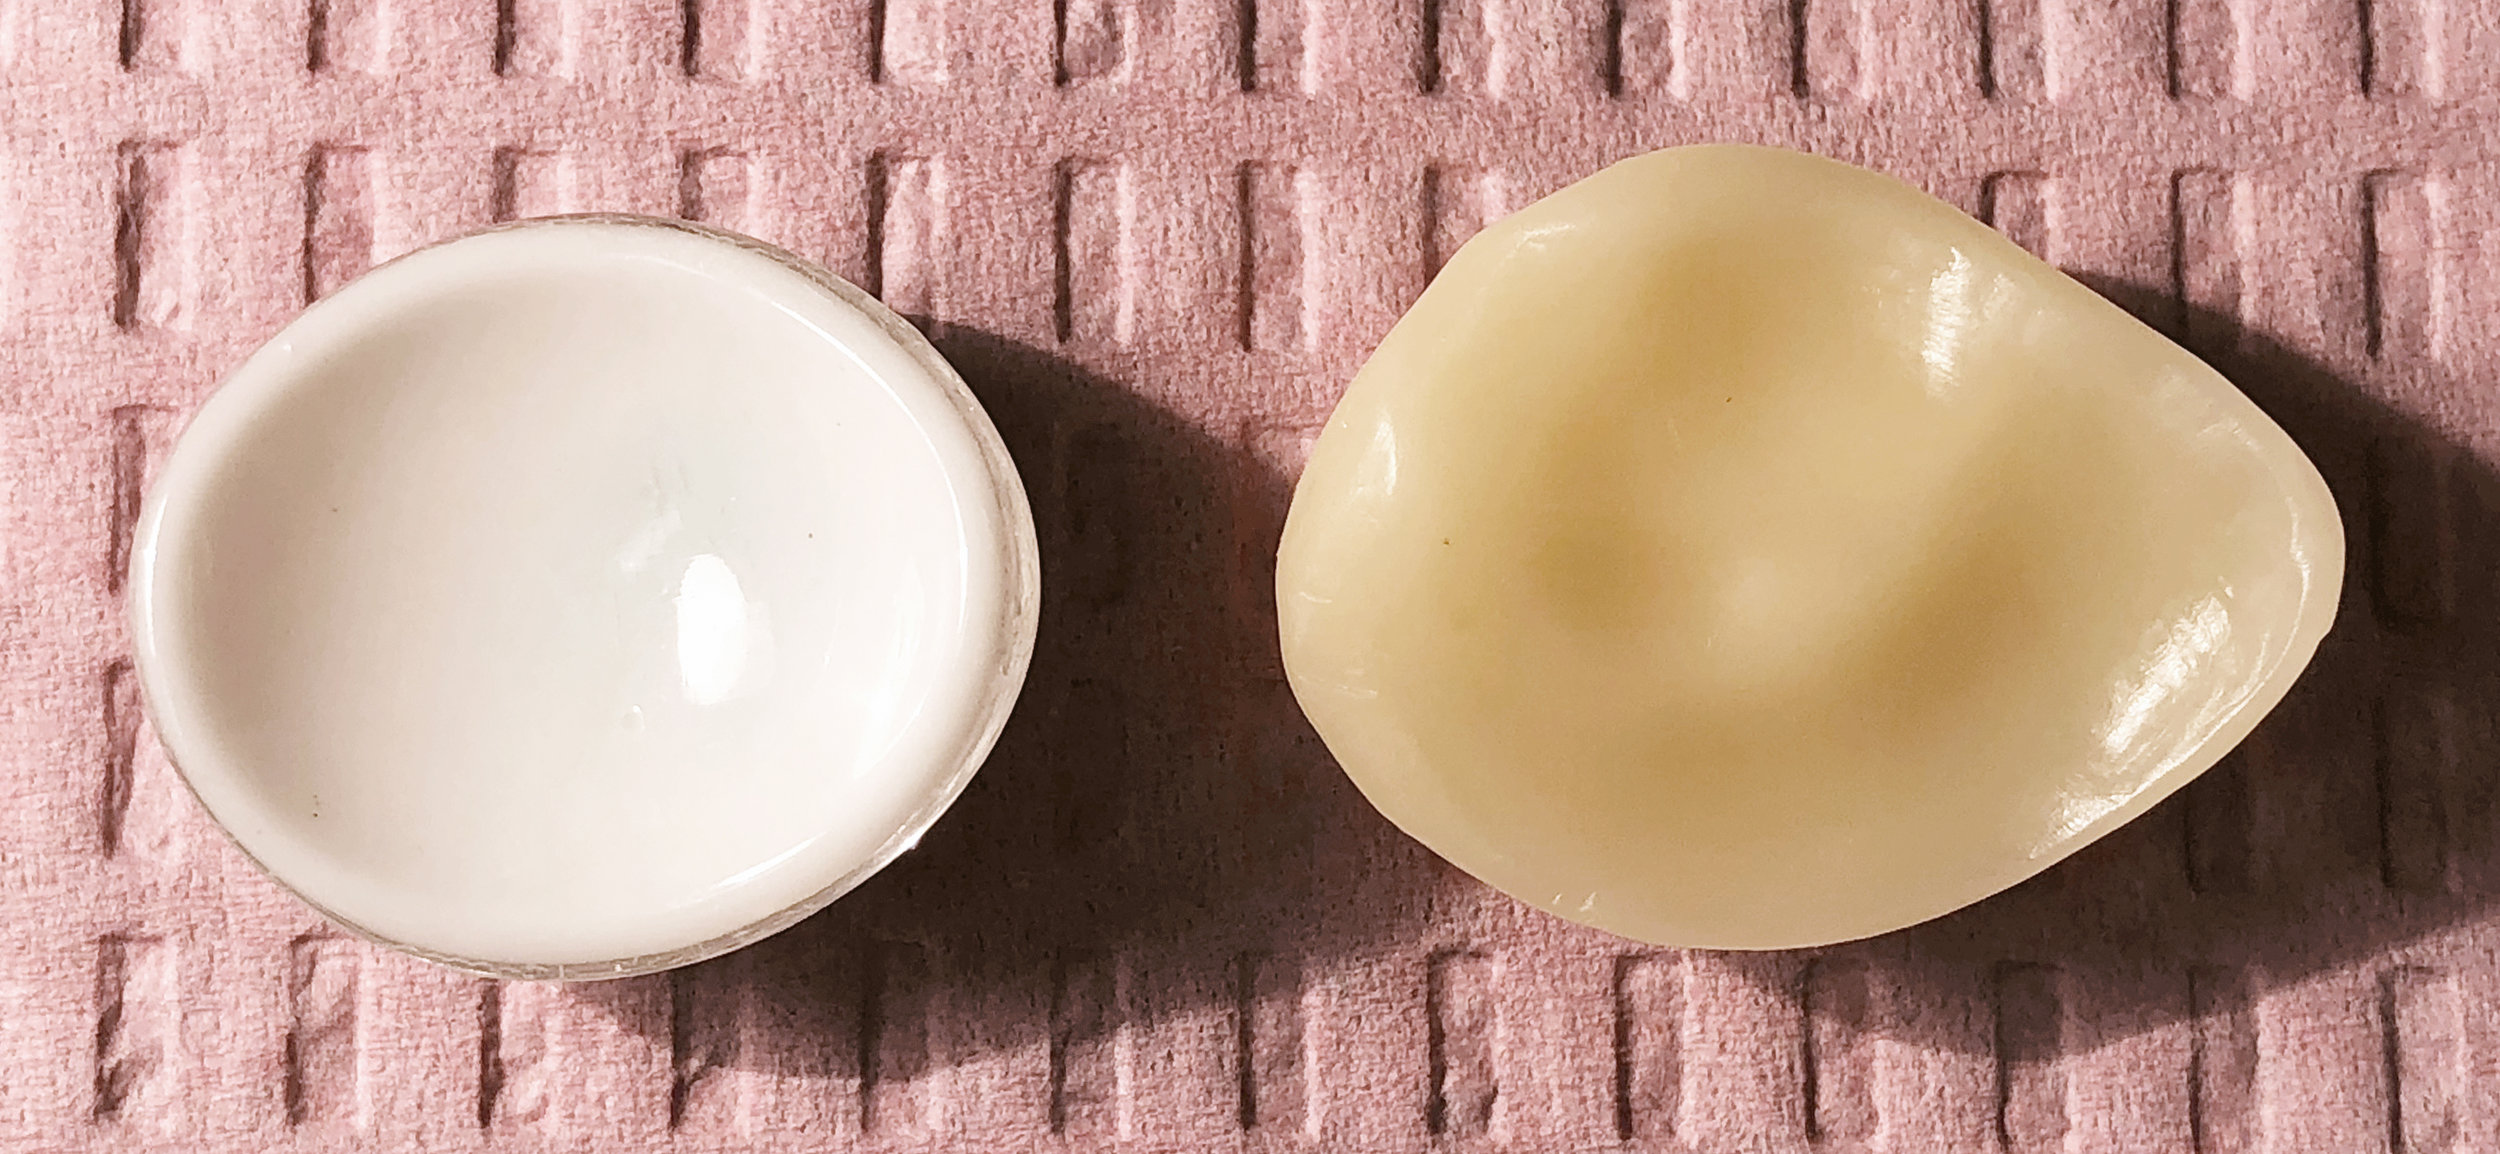 A side by side comparison of the posterior side of the stock eye vs. the custom fitted prosthesis. The shape of the prosthesis is shown in a wax model, to be cast later into the final prosthesis.